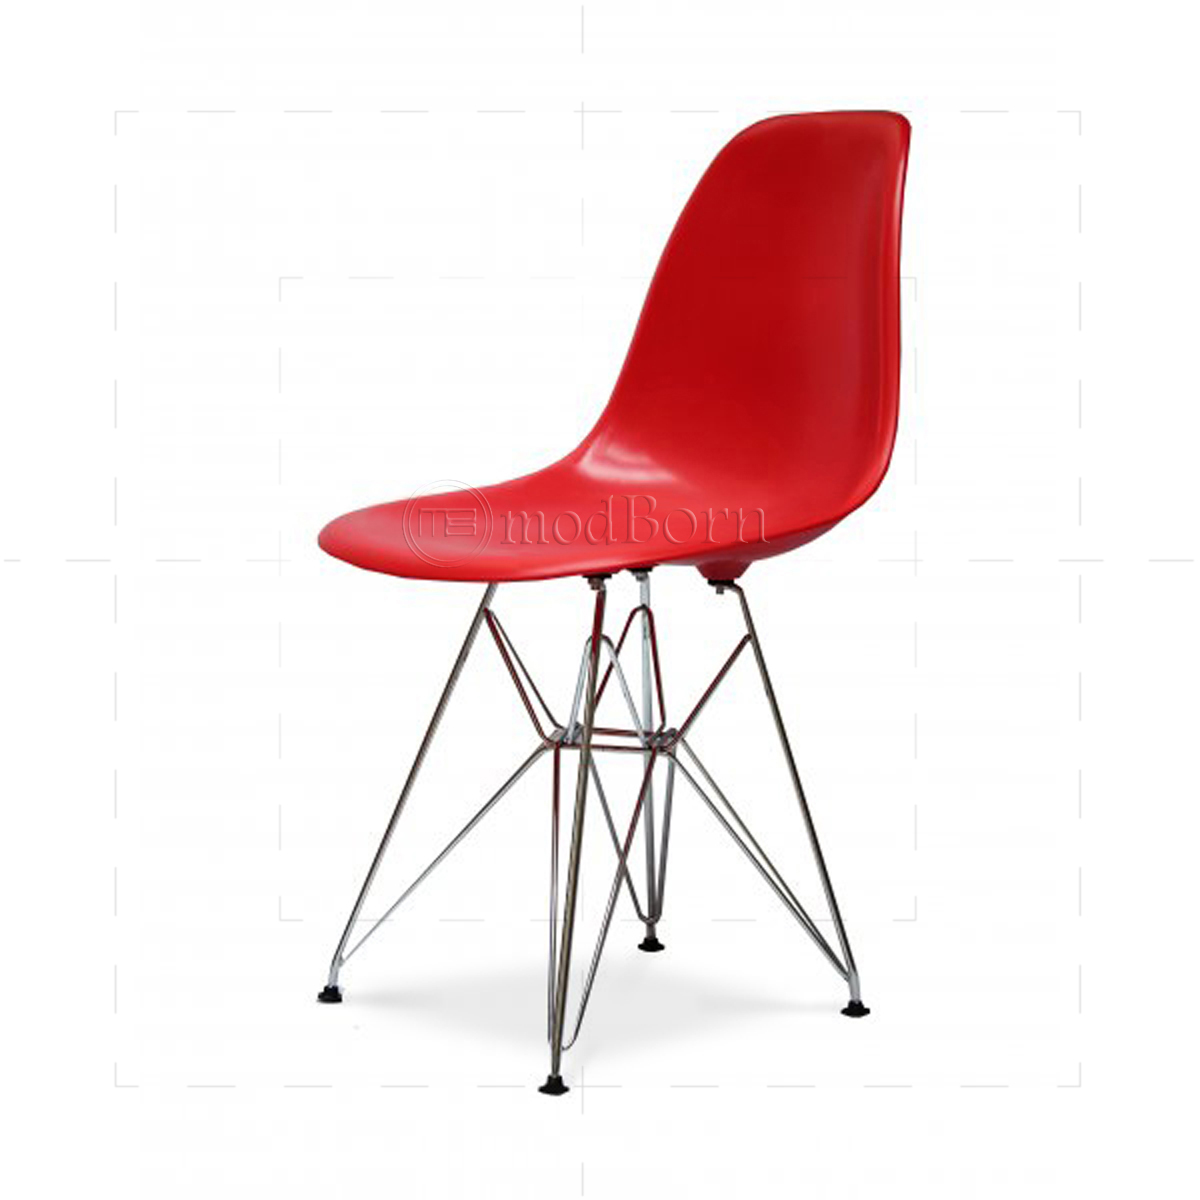 Eames style dining dsr eiffel chair red replica for Eames chair replica uk